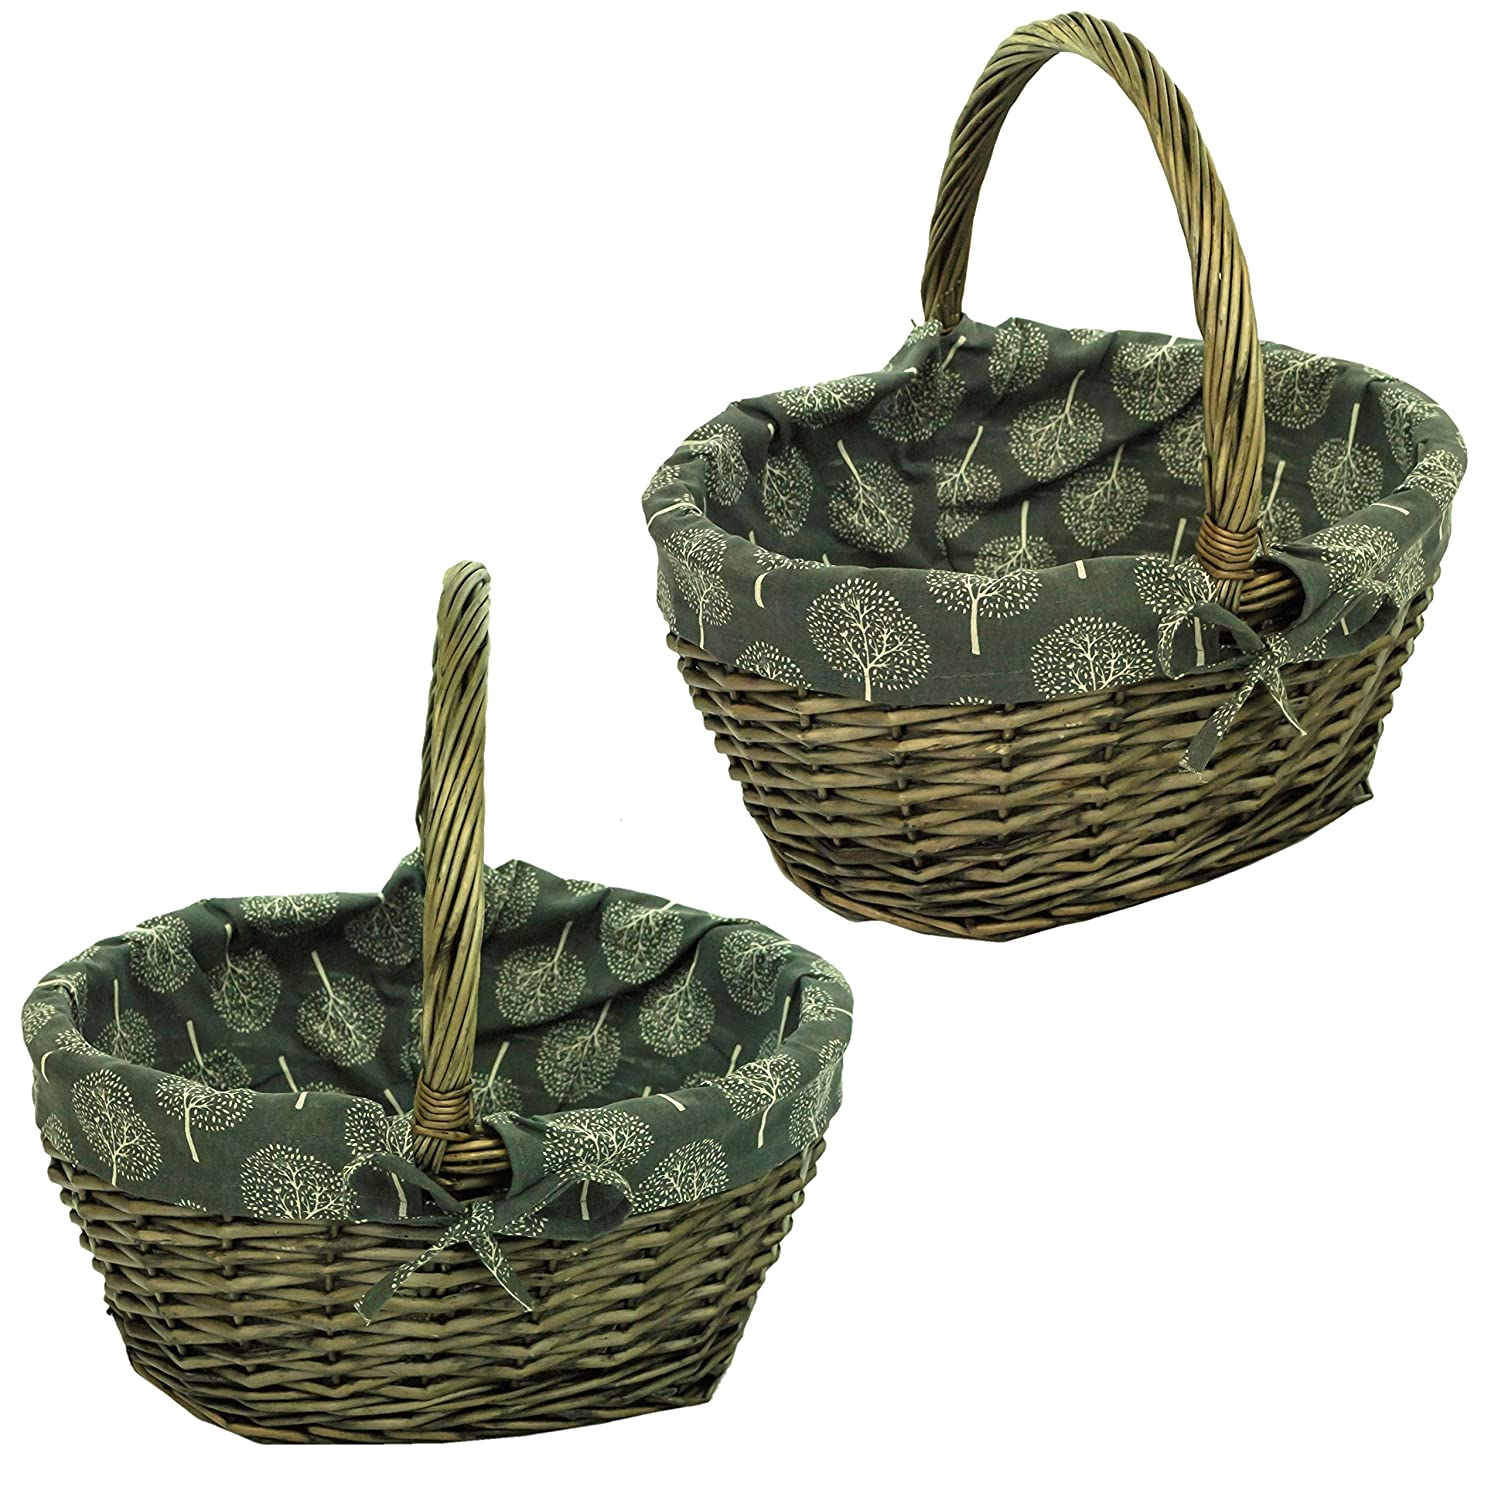 east2eden Brown Wicker Willow Traditional Shopping Storage Display Basket Hamper with Dark Mulberry Liner (Set of 2 Small) e2e